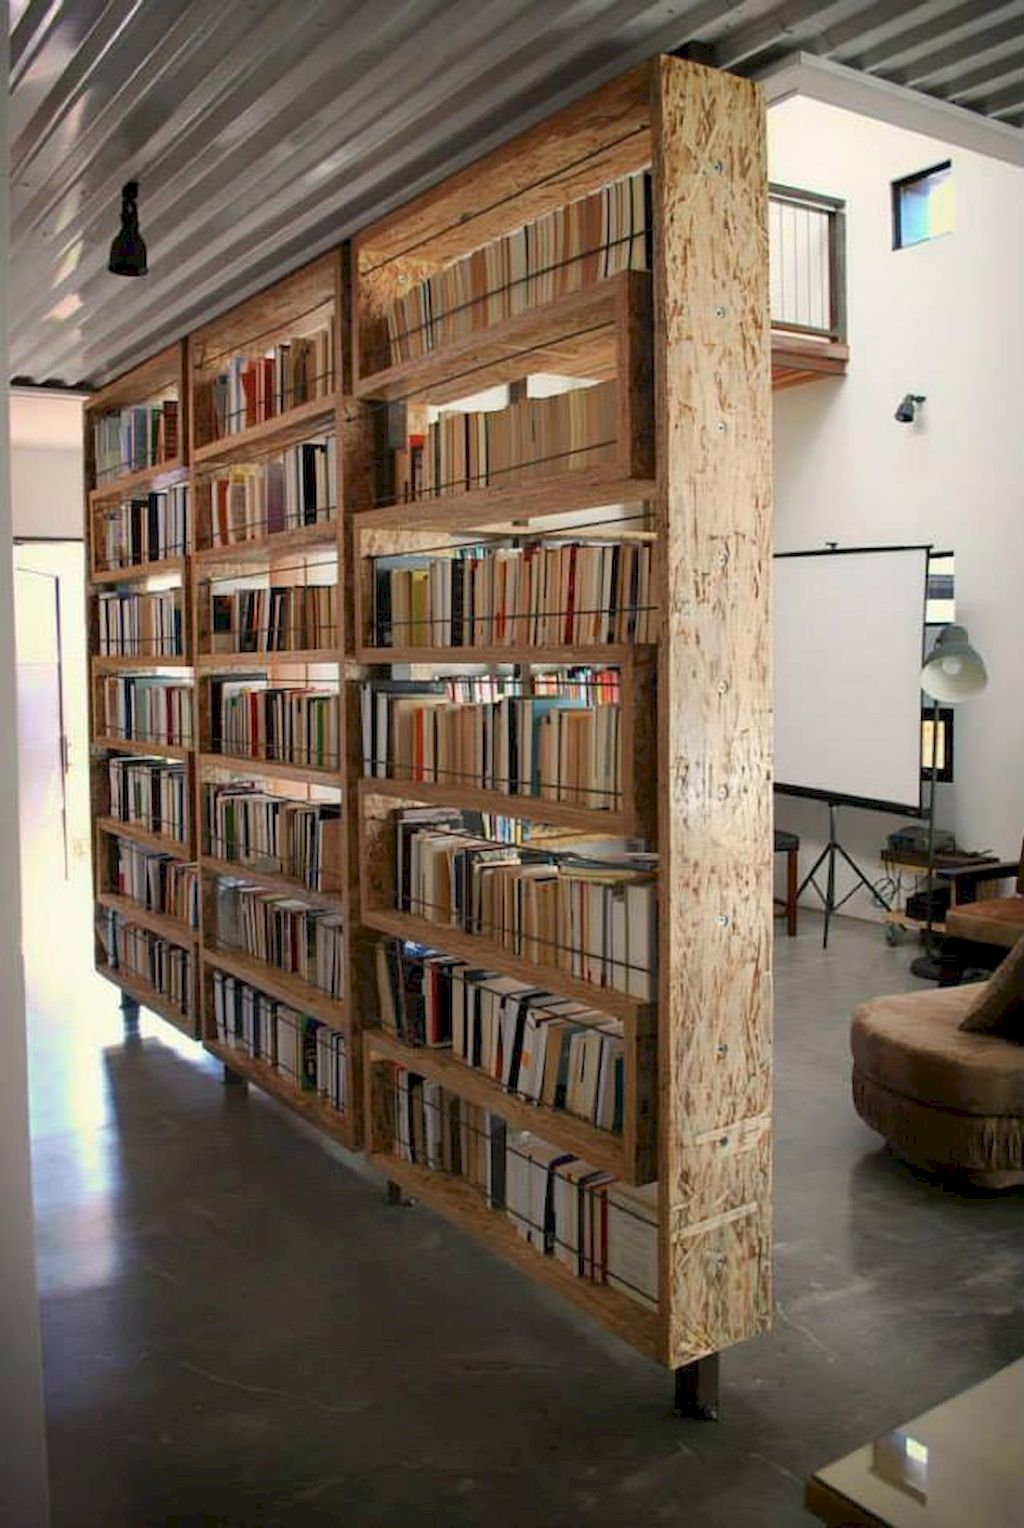 40+ Super Ideas for Your Home Library with Rustic Design ...